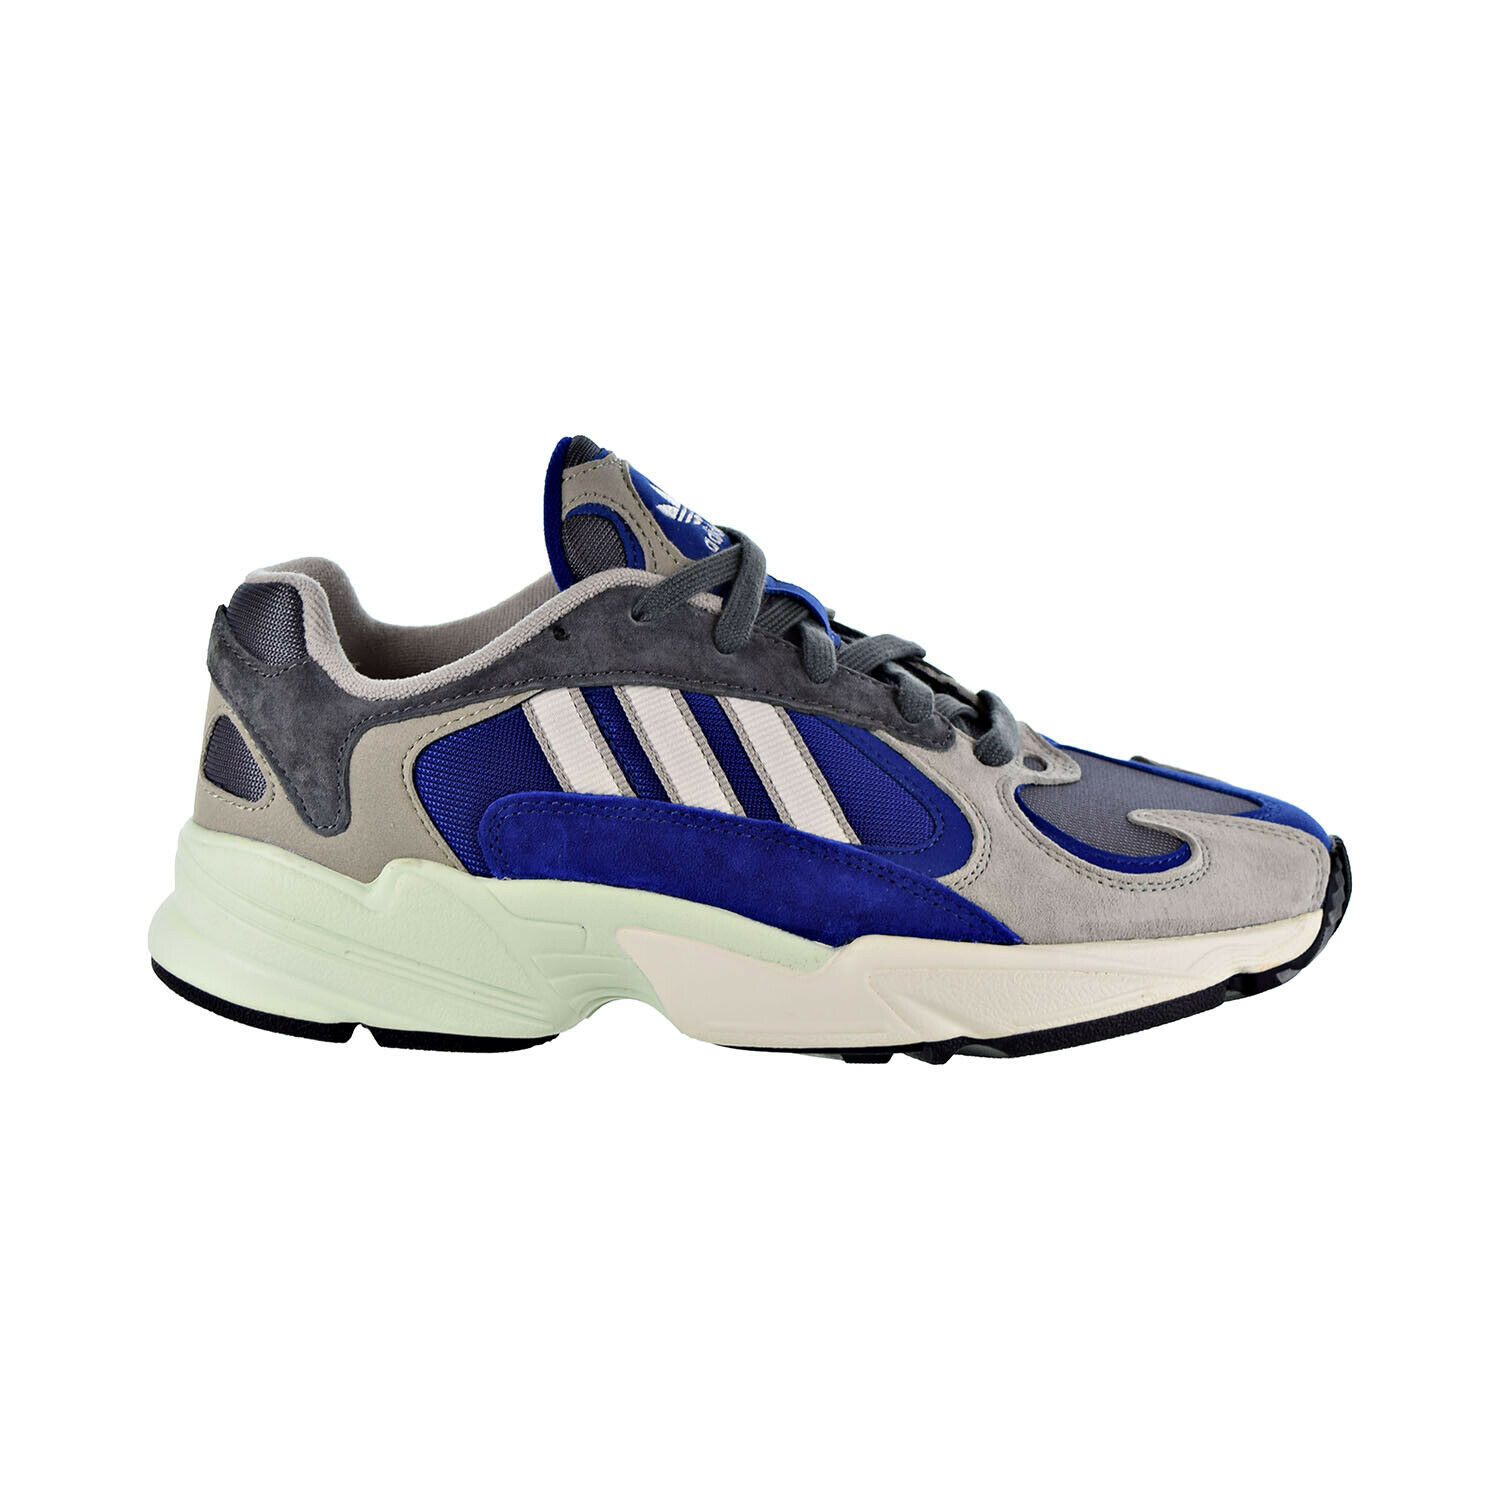 Adidas Yung 1 Men's shoes Sesame Grey Chalk White AQ0902